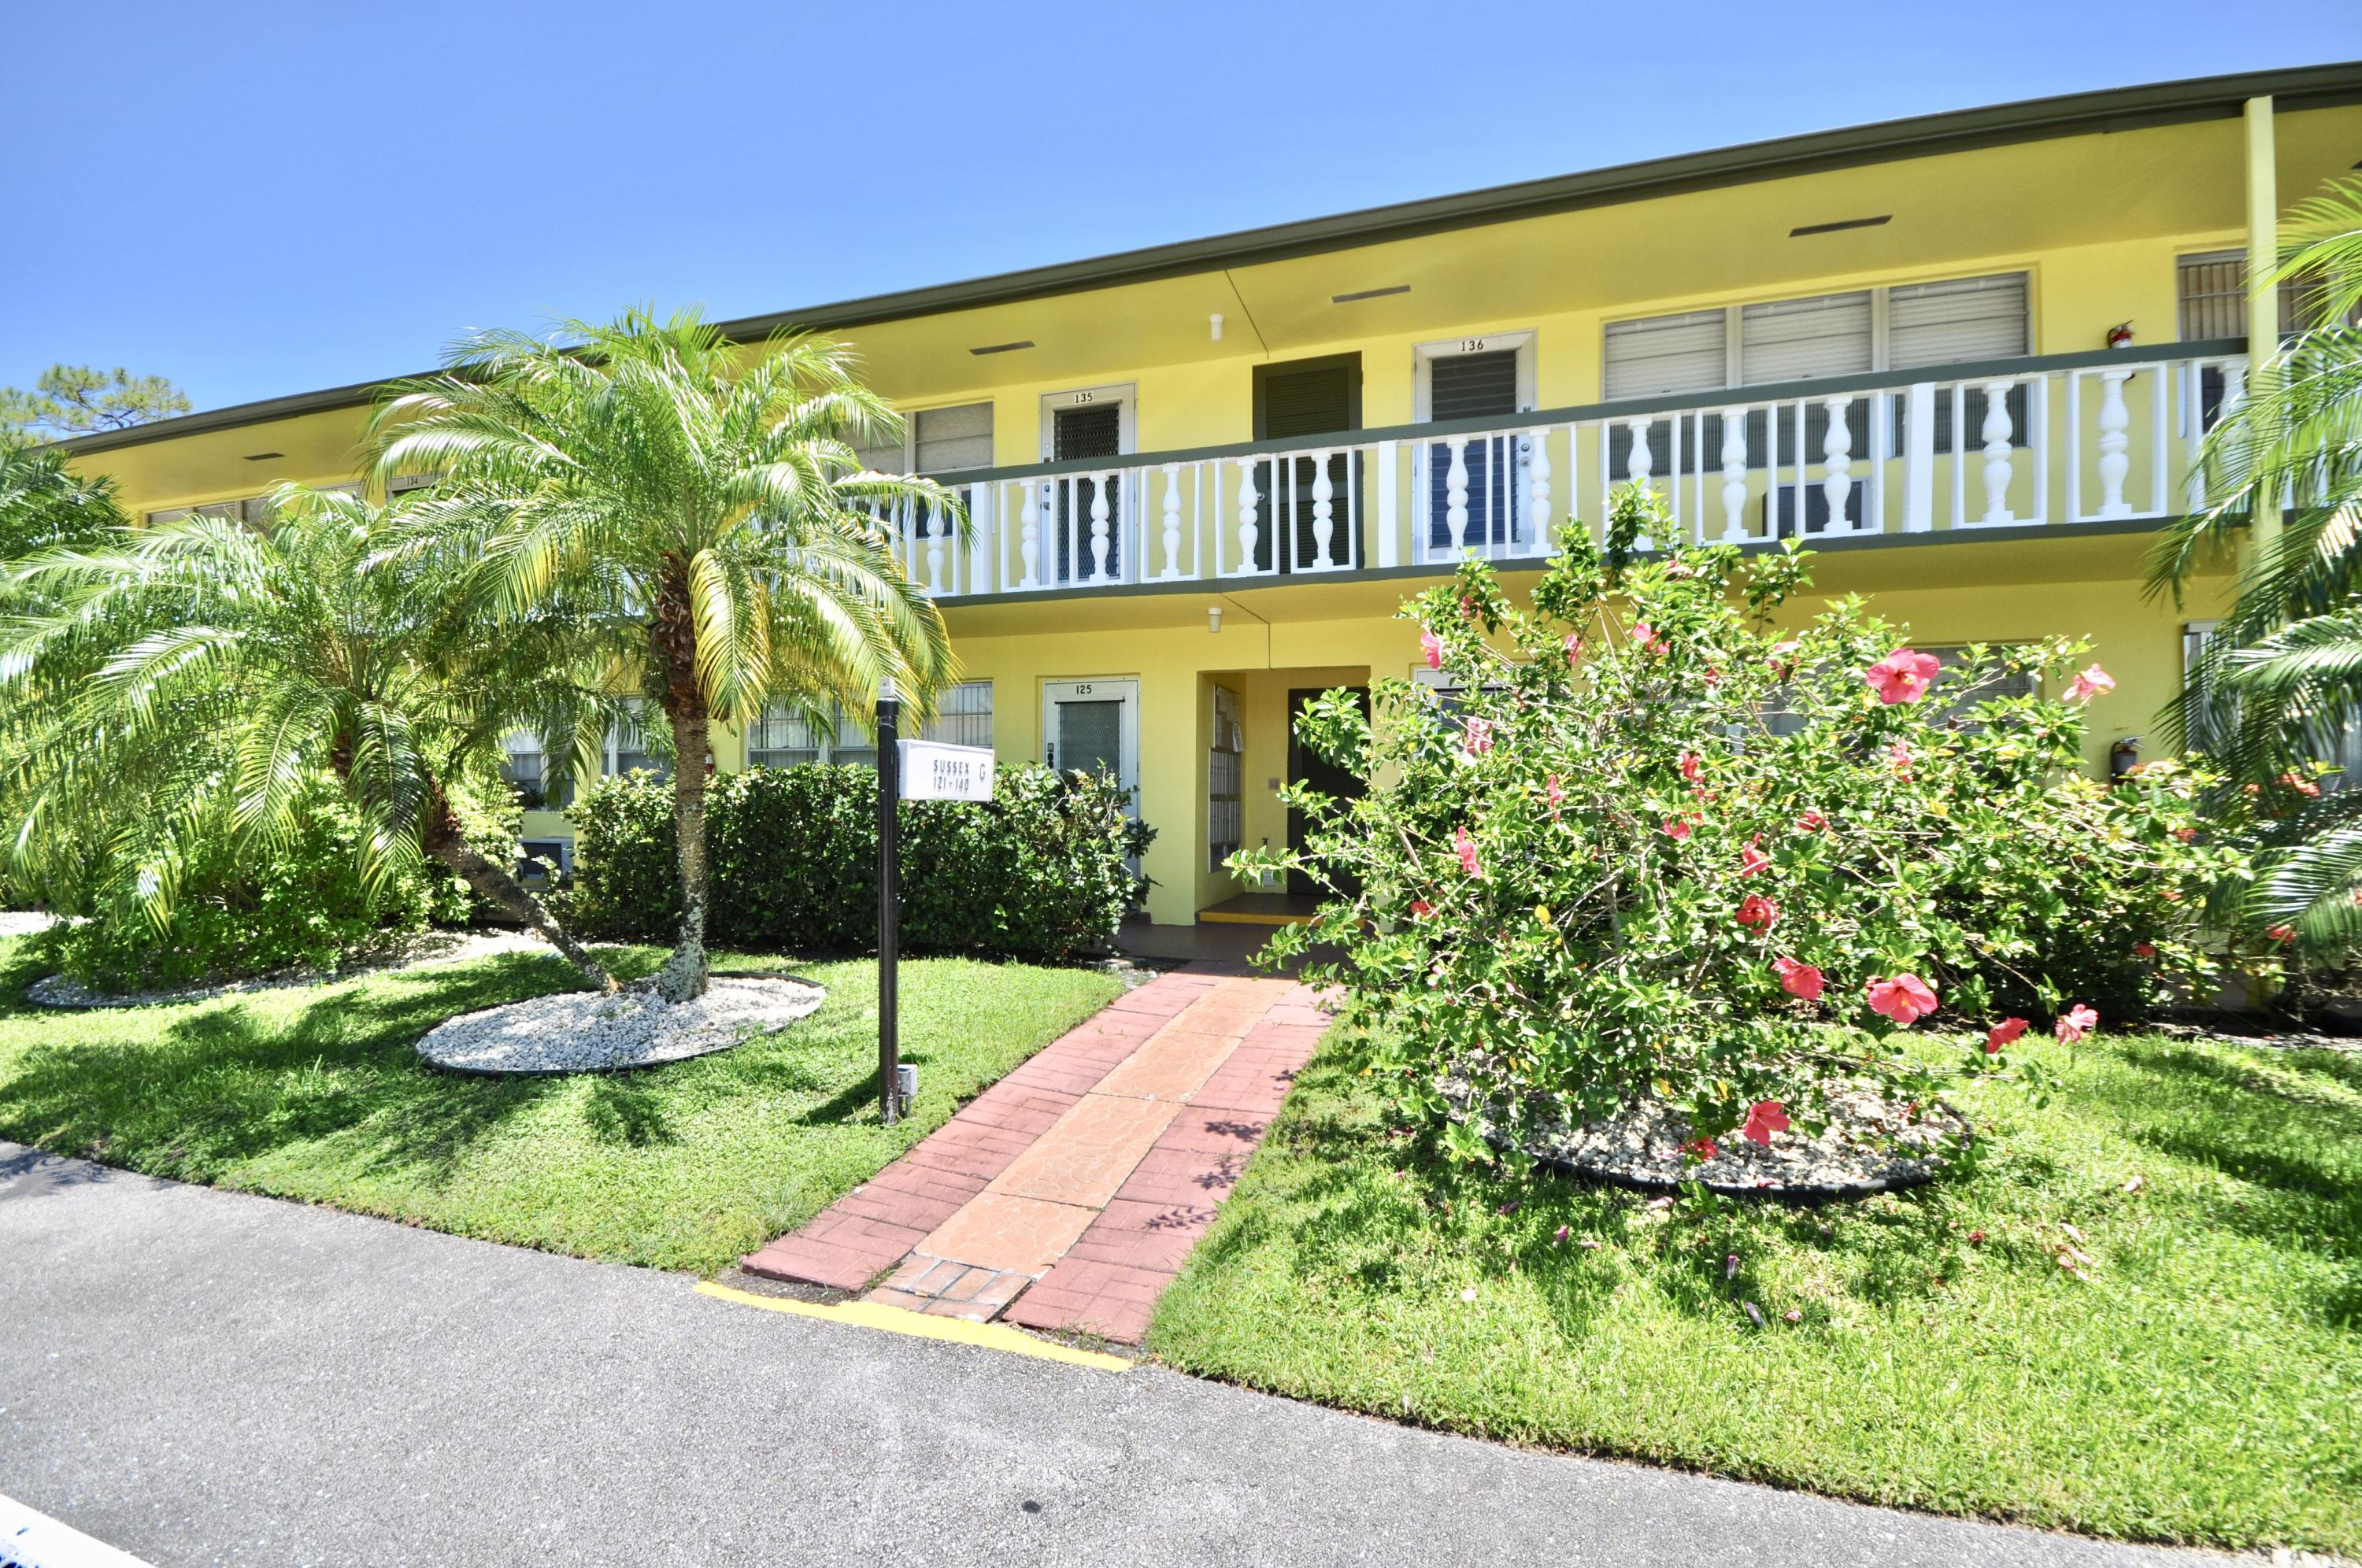 125 Sussex G, West Palm Beach, Florida 33417, 1 Bedroom Bedrooms, ,1 BathroomBathrooms,Residential,for Rent,Sussex G,RX-10631692, , , ,for Rent